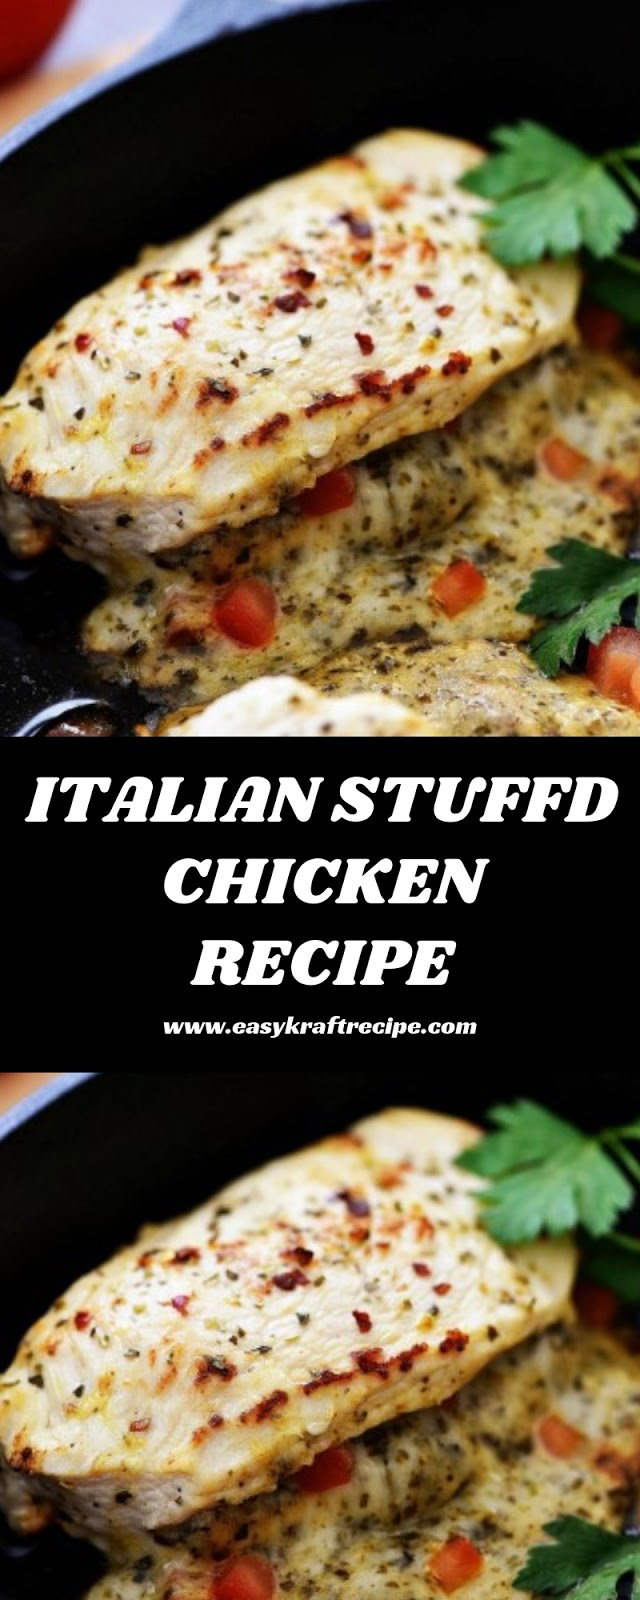 ITALIAN STUFFD CHICKEN RECIPE